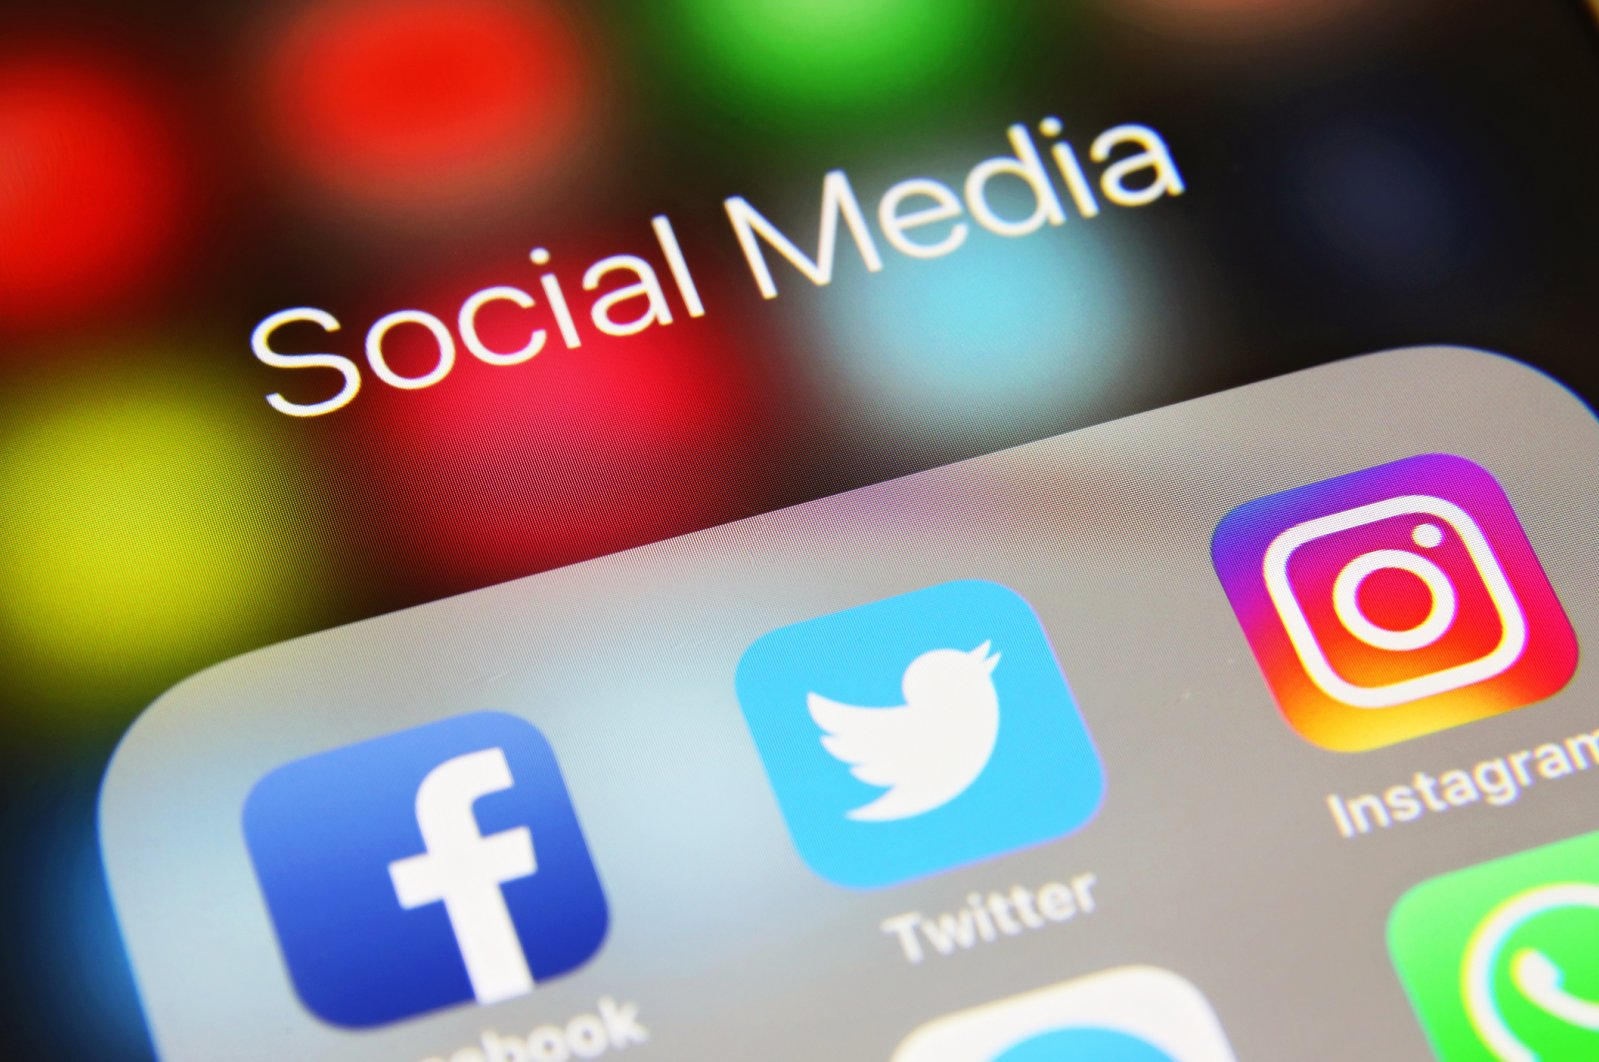 A mobile phone screen with social media icons applications Facebook, Twitter, Instagram and WhatsApp, London, U.K., June 2, 2019. (iStock Photo)